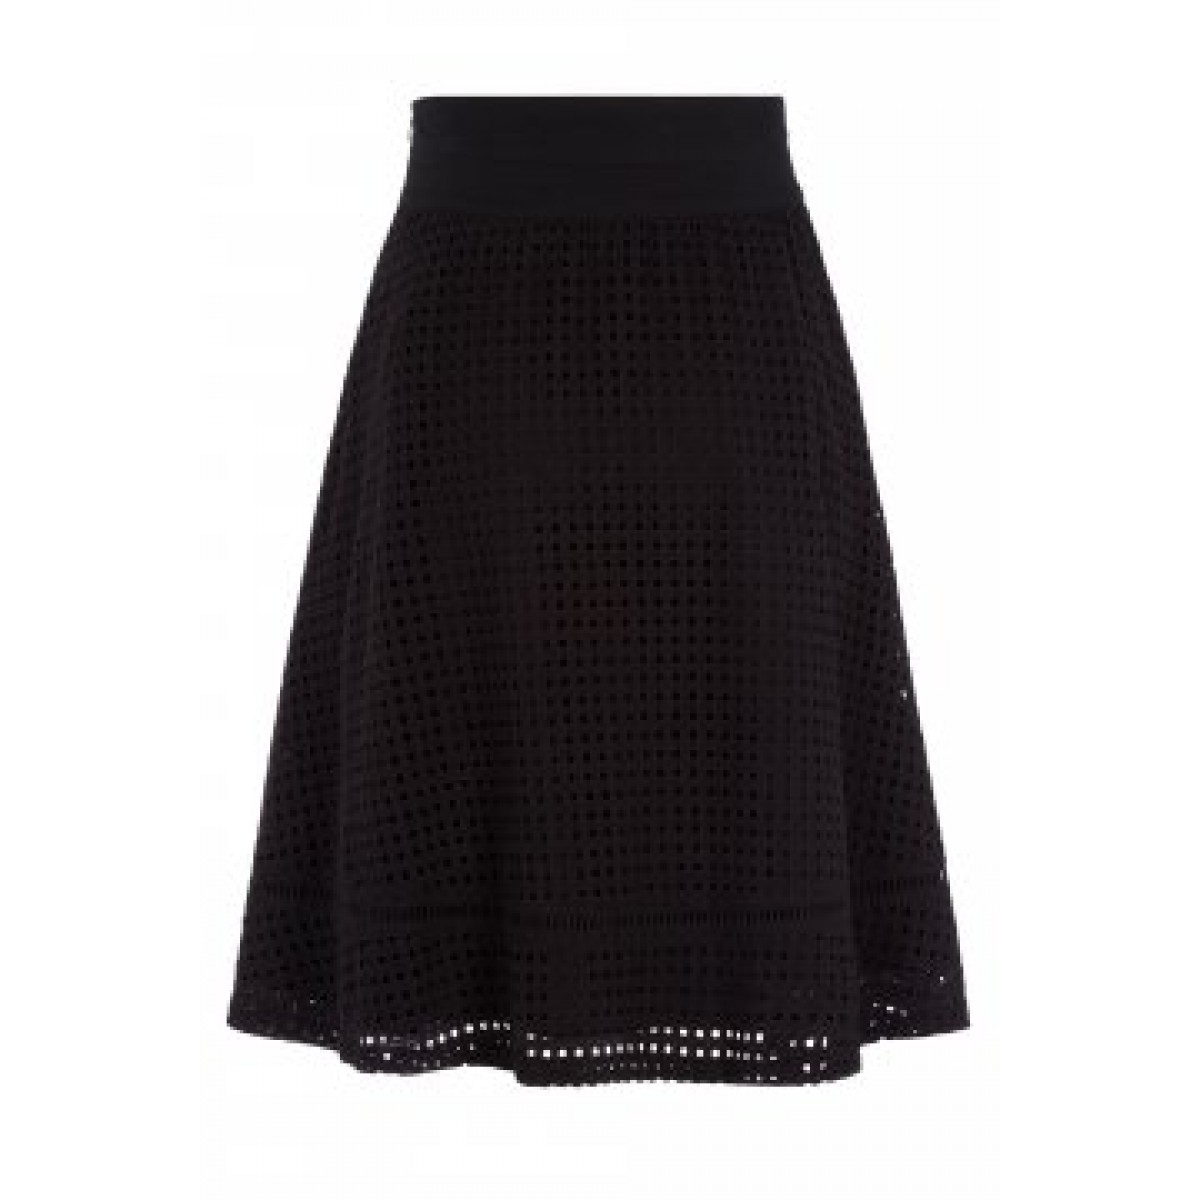 Oui 46976 Skirt Black-32